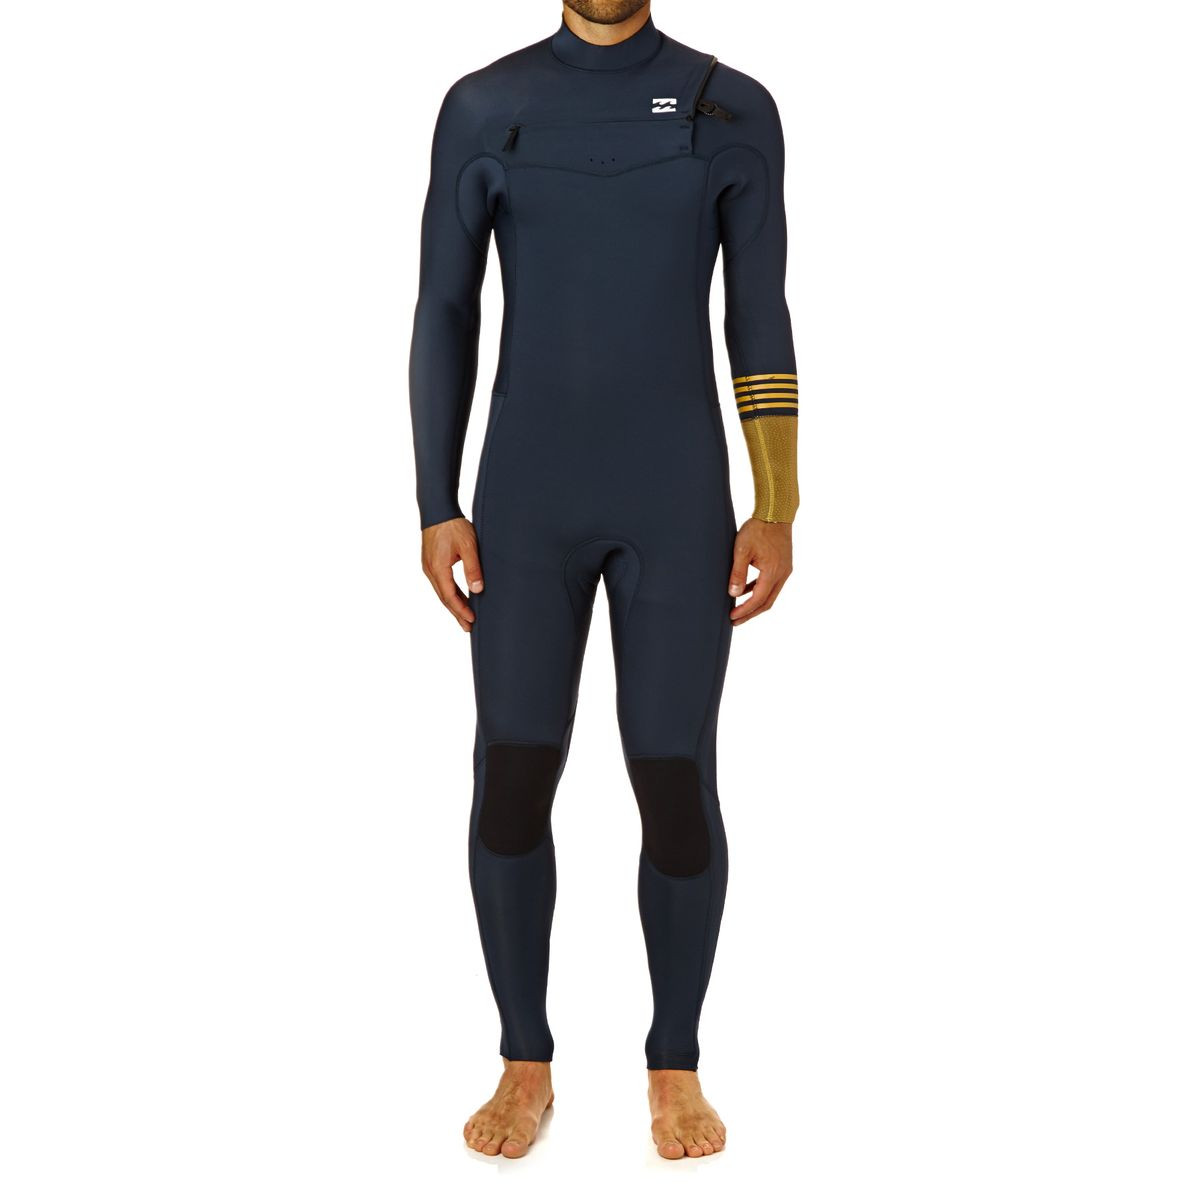 Billabong Revolution Tri-bong 4/3mm 2018 Chest Zip Wetsuit - Slate